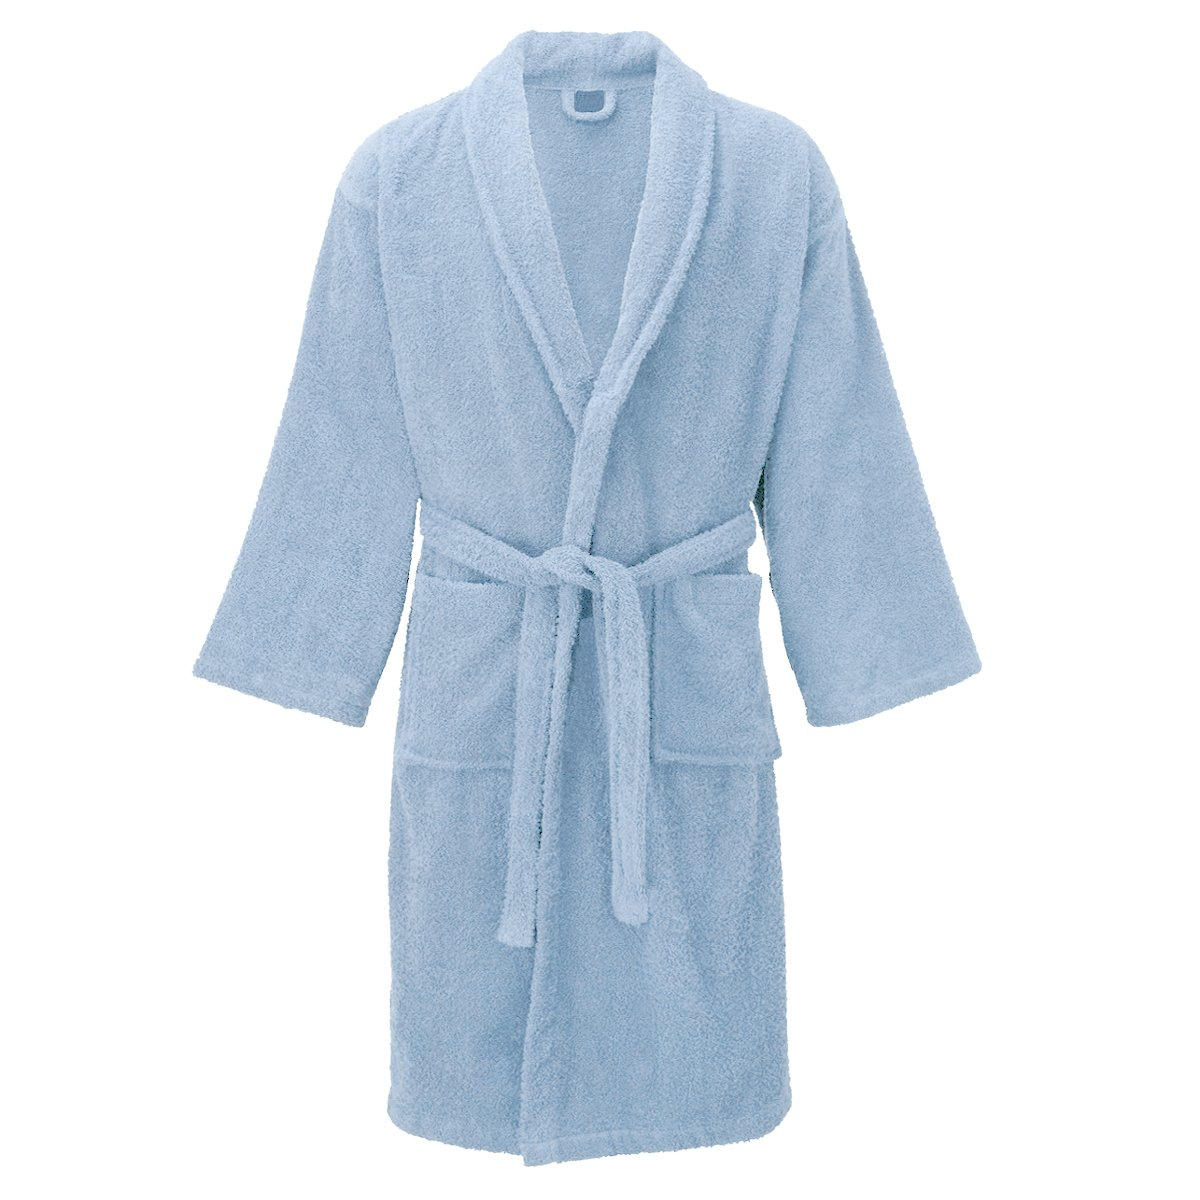 DNM & CO Luxury Cotton Toweling Bathrobe Dressing Gown Belted Waist Unisex Mens Womens One Size